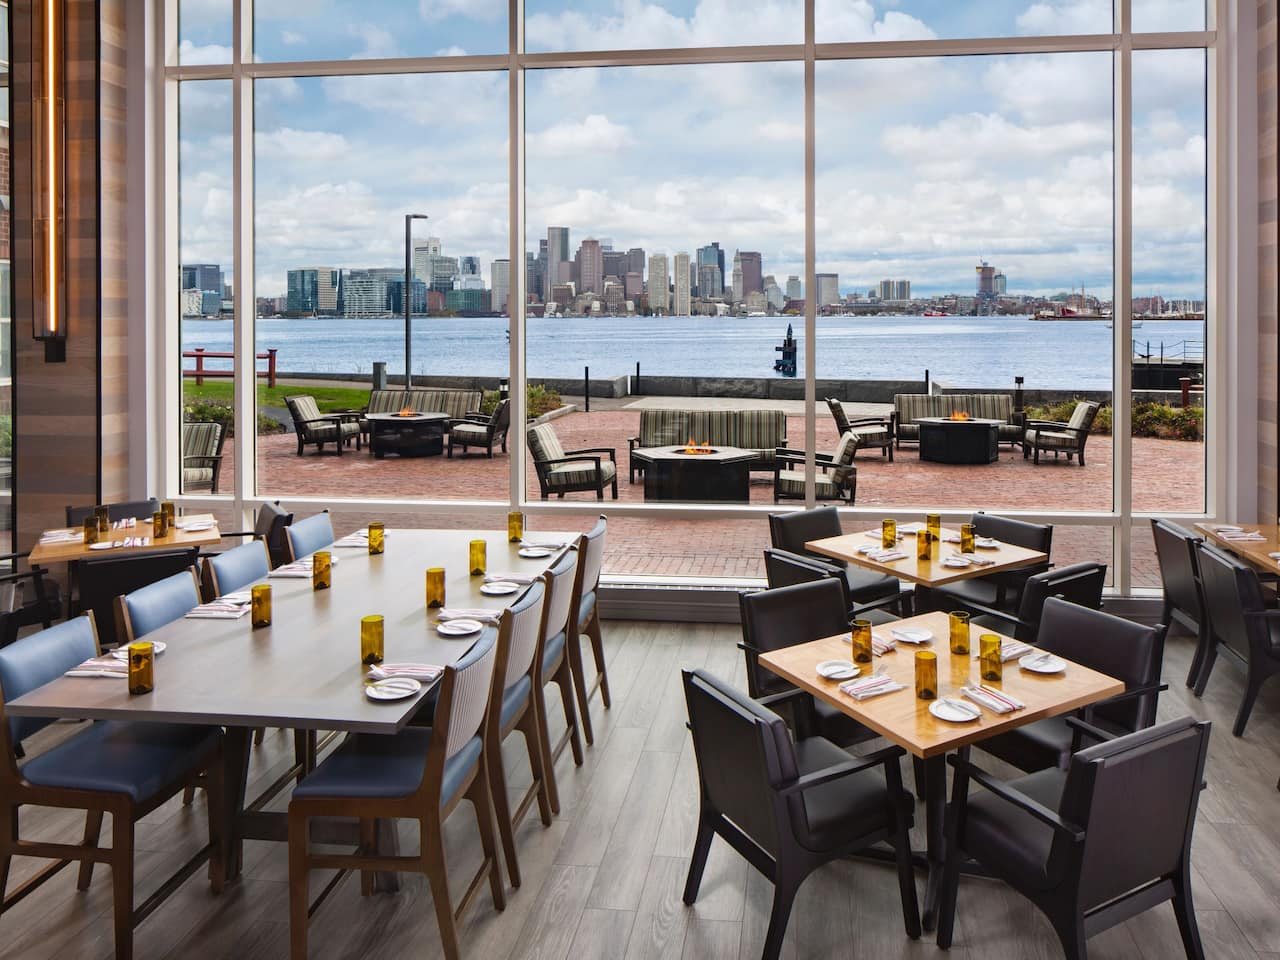 Harborside Grill Patio Skyline View